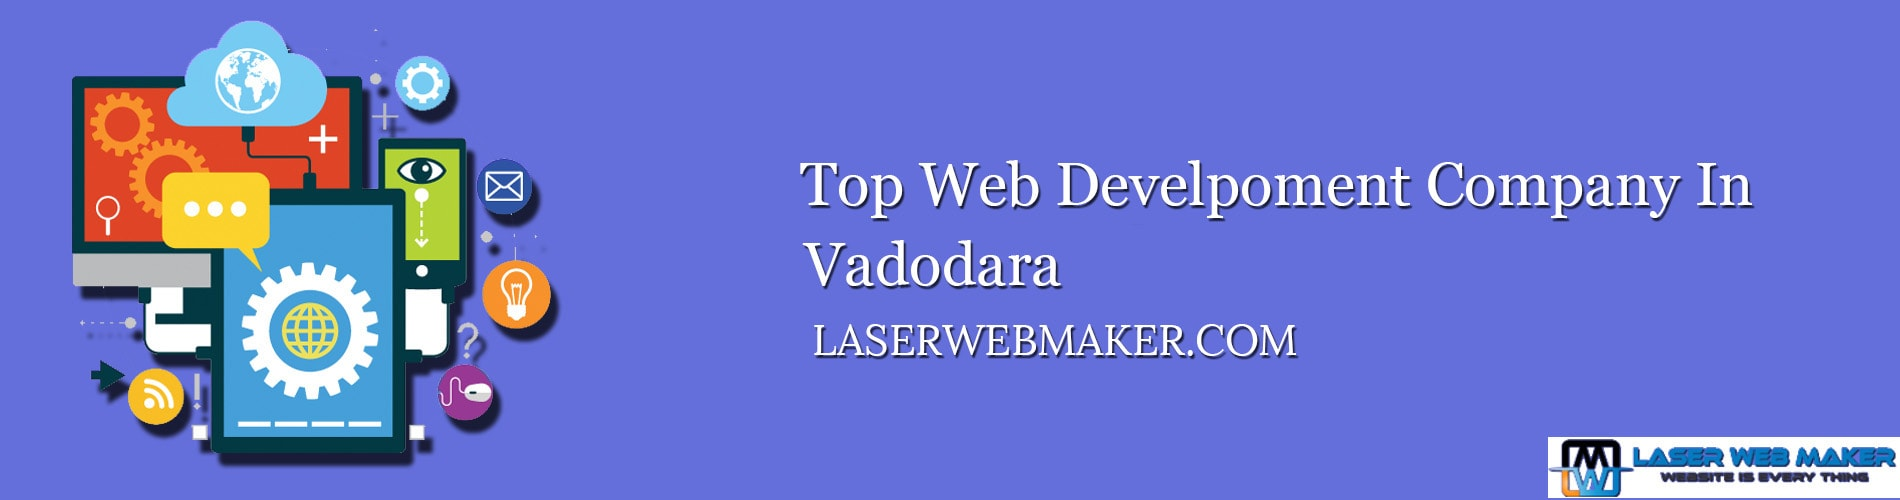 Top Web Development Company In Vadodara Gujarat